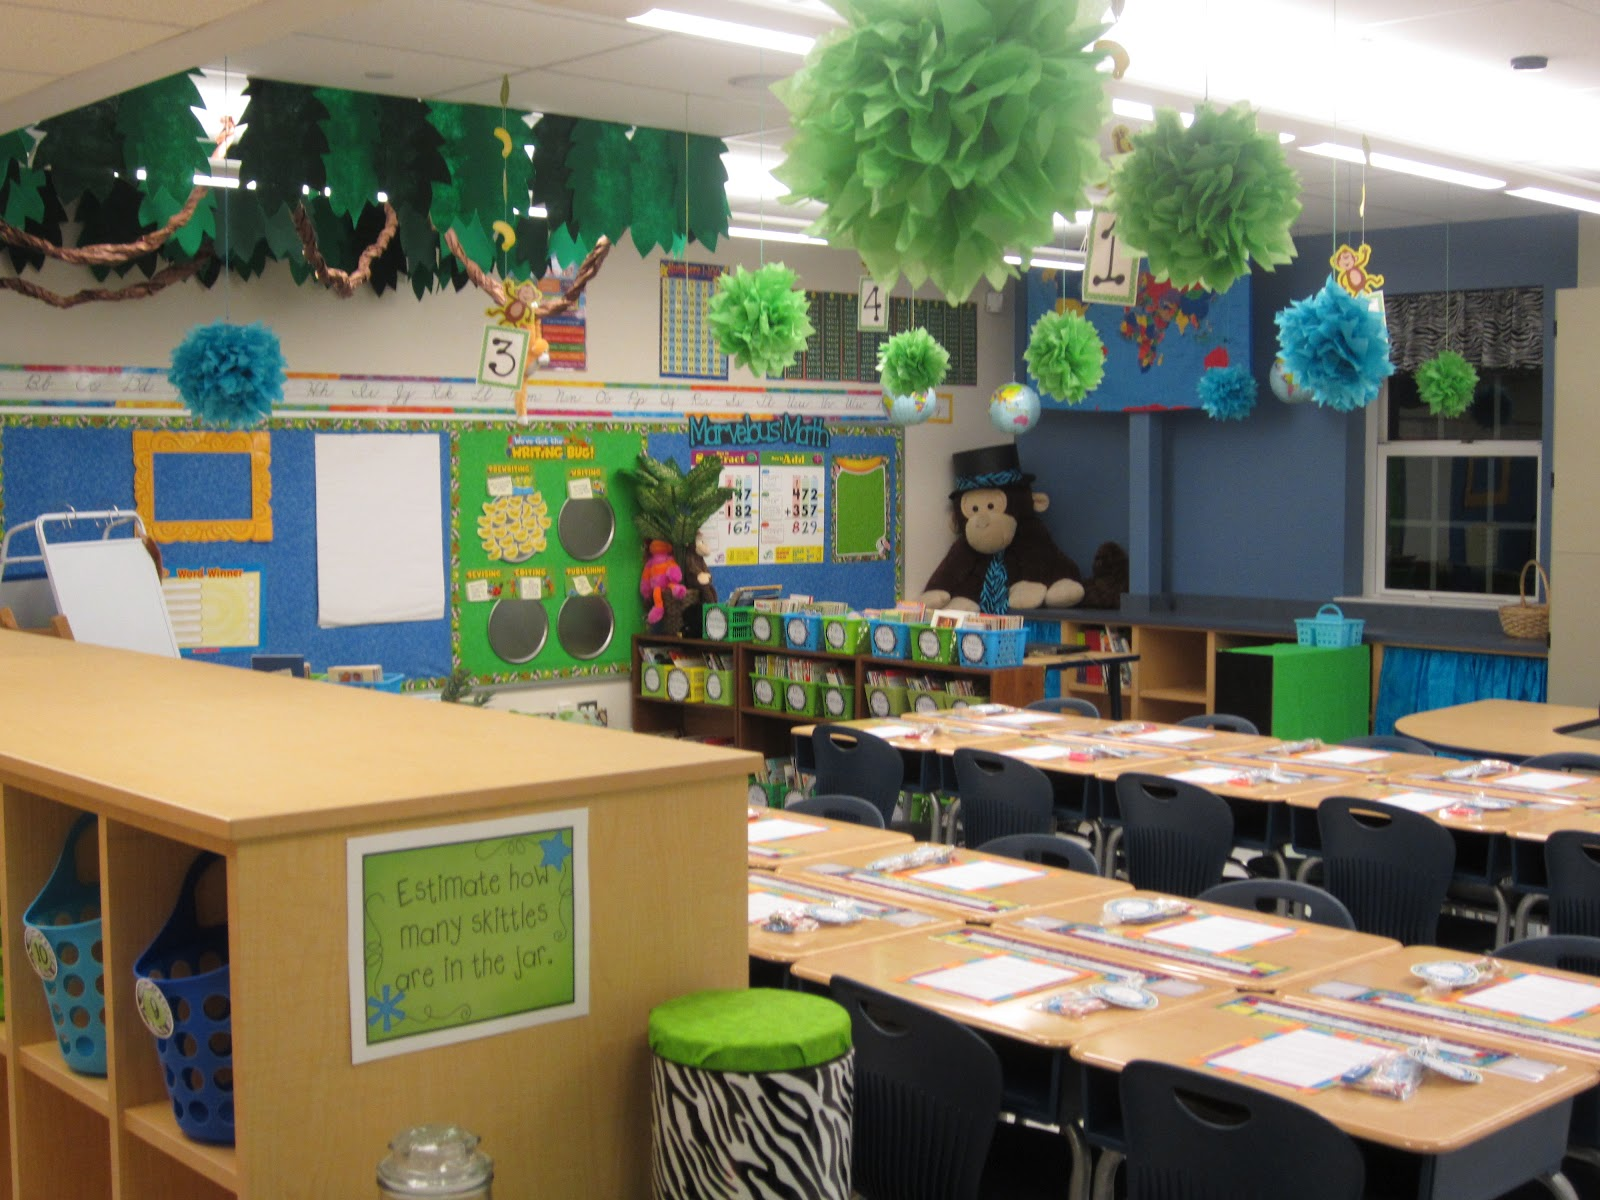 Classroom Design Inspiration ~ The creative chalkboard classroom tour pictures galore